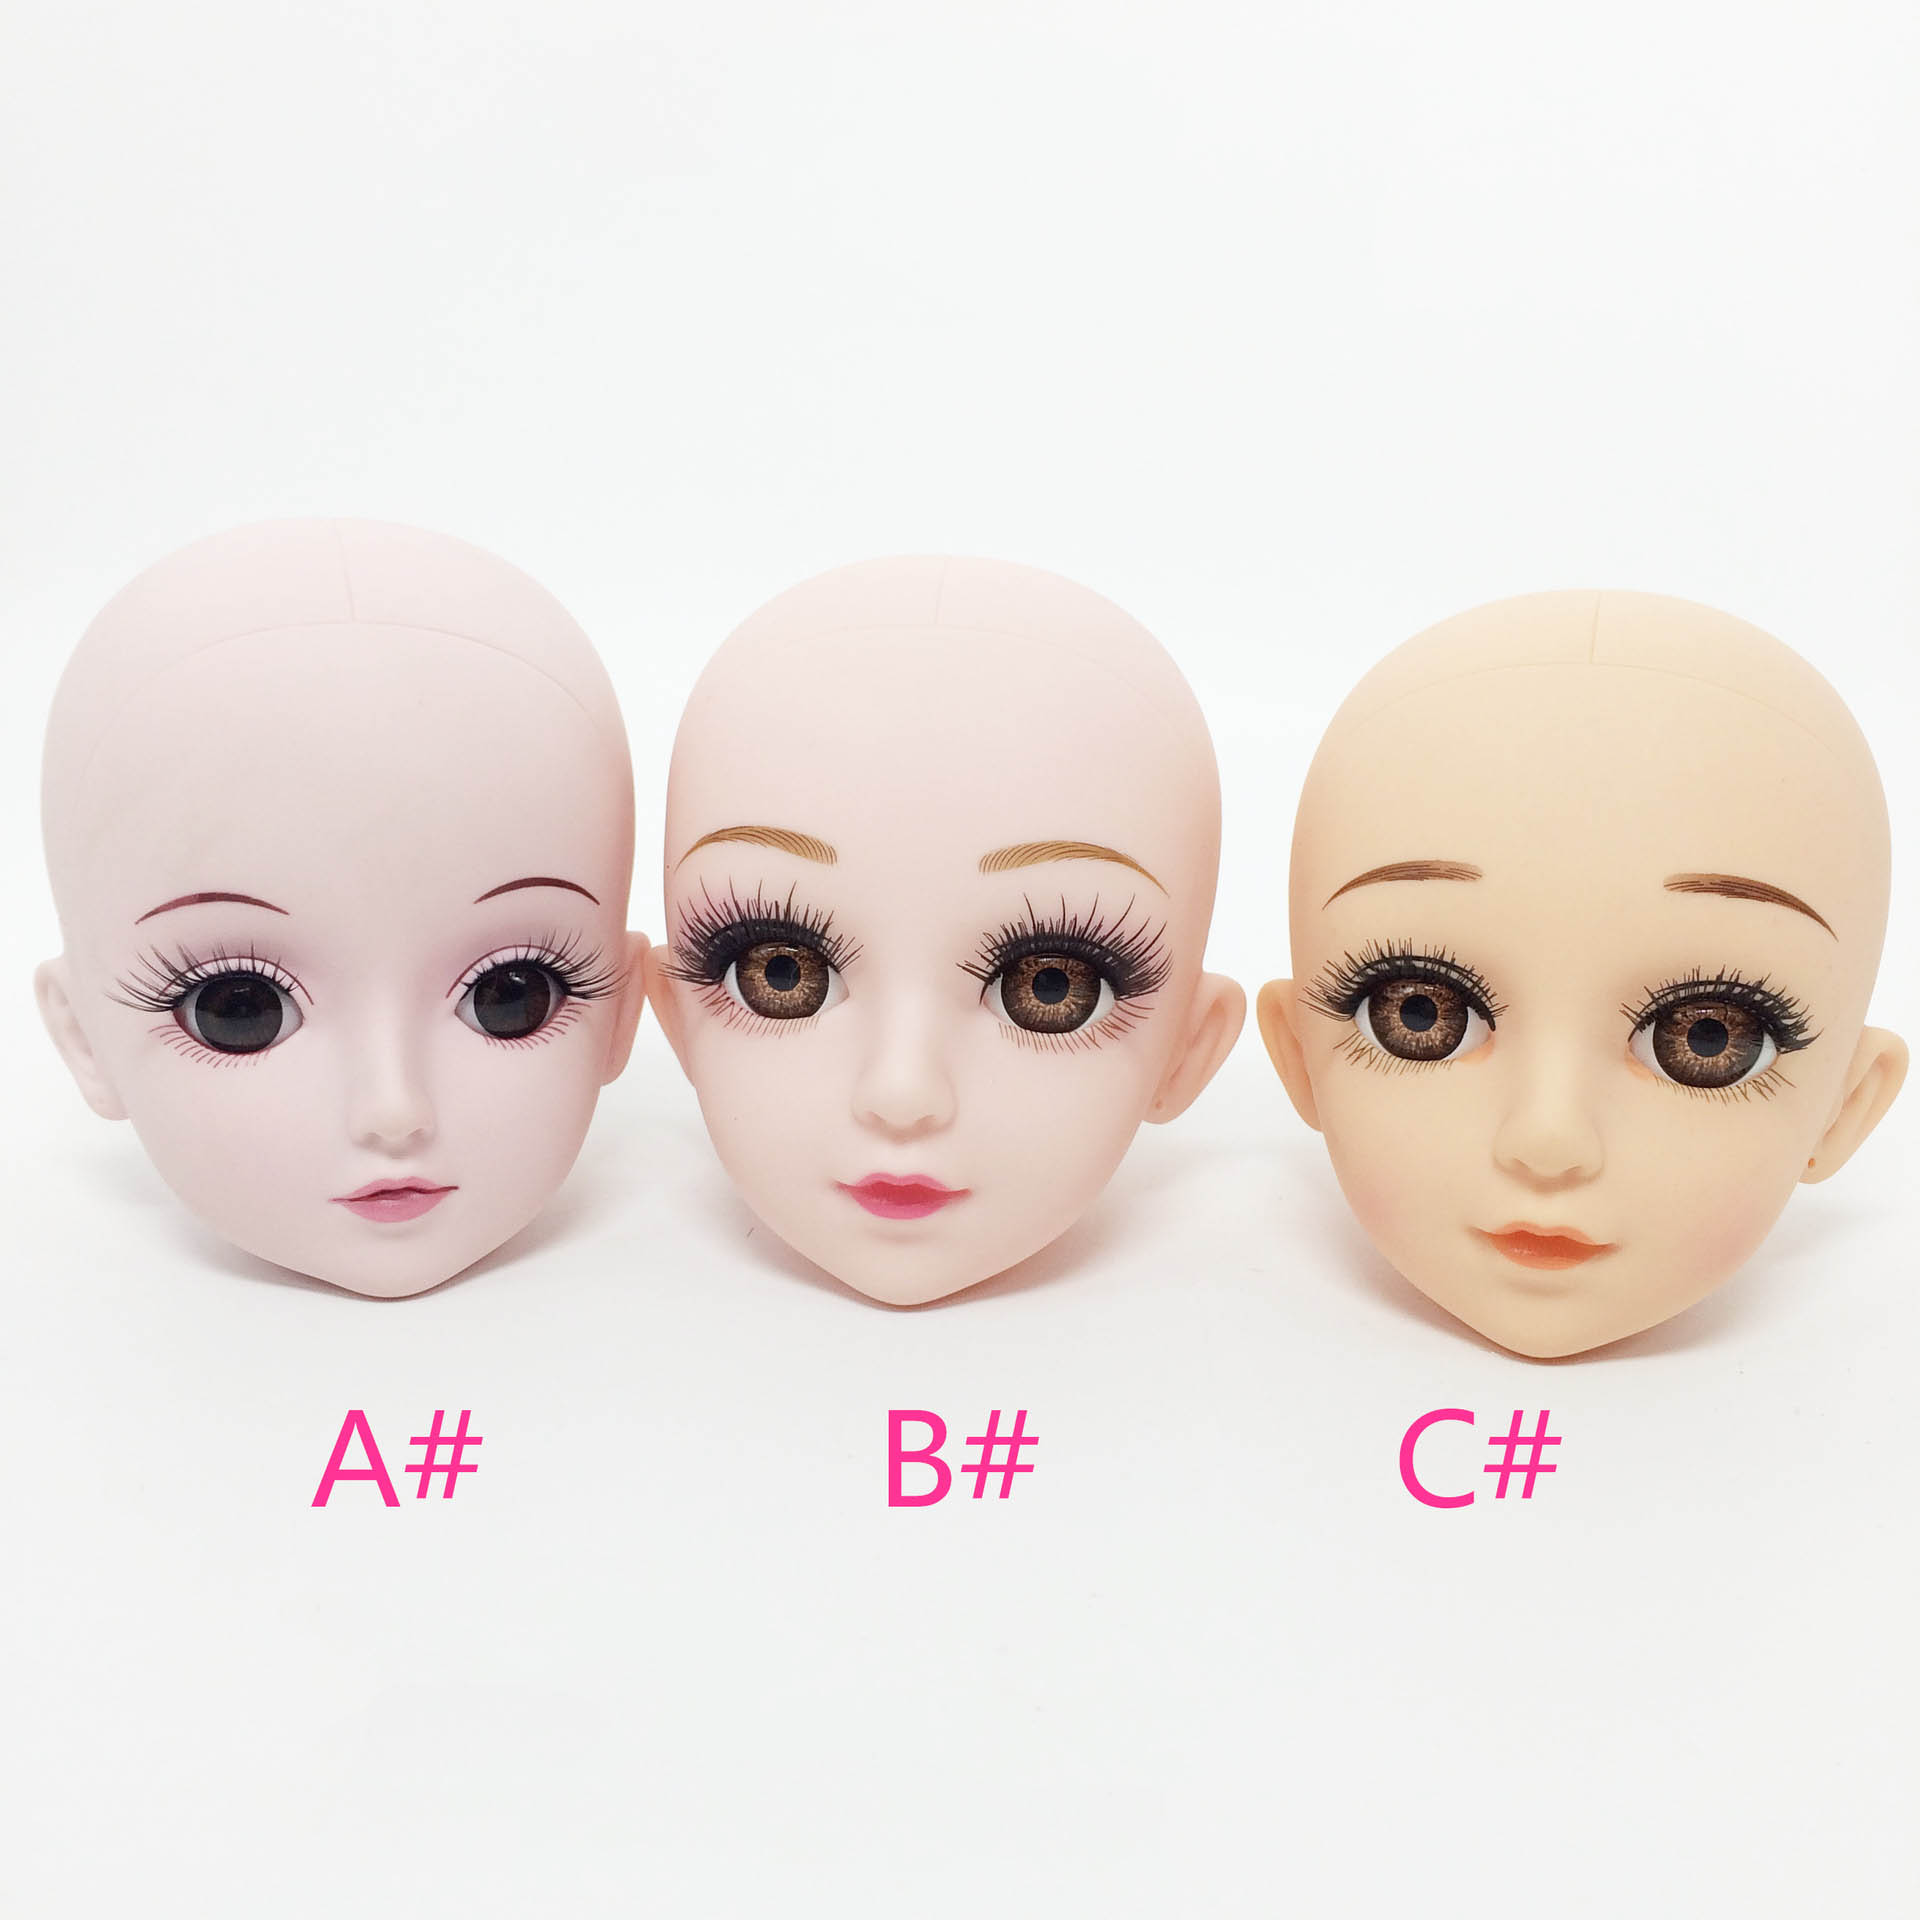 Bald 60cm Bjd Doll Head Makeup DIY Toys For Girl Children Changeable Eye 18 Inch Doll Accessories